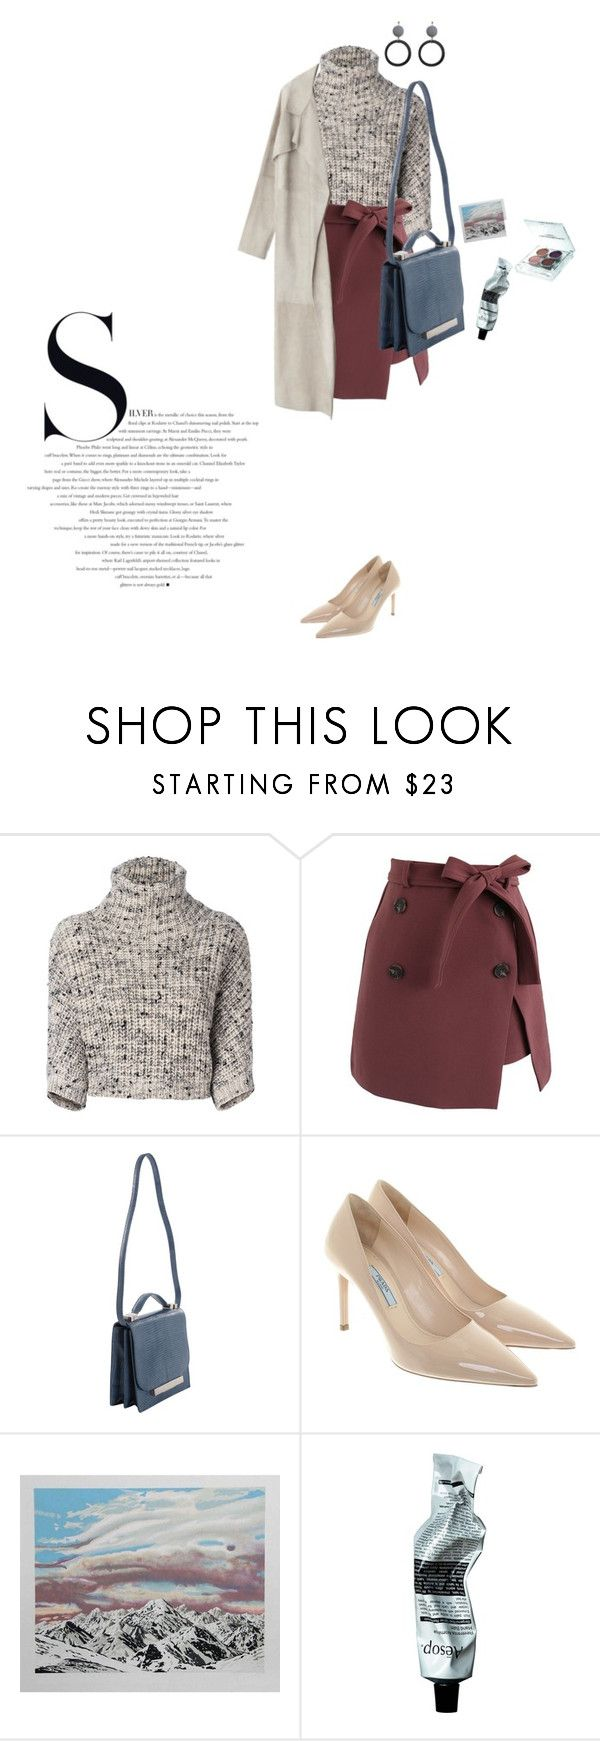 """Untitled #184"" by palina-parker ❤ liked on Polyvore featuring Brunello Cucinelli, Chicwish, The Row, Prada, David Jones and Tromborg"